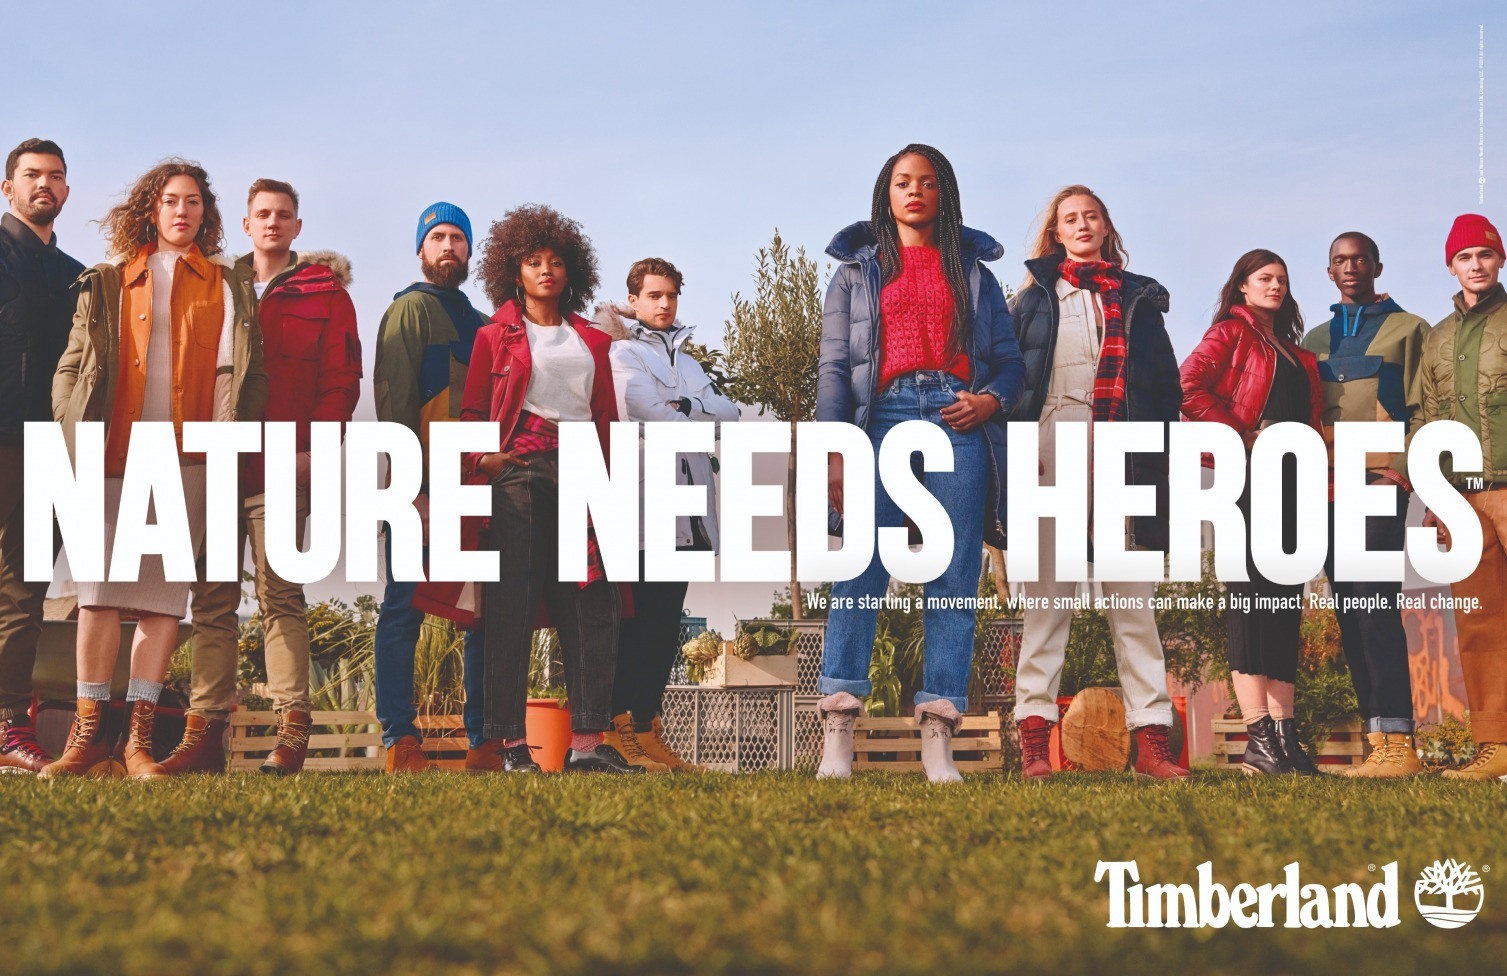 gallery/TIMBERLAND_NATURE NEEDS HEROES_GROUP_DPS_CMYK